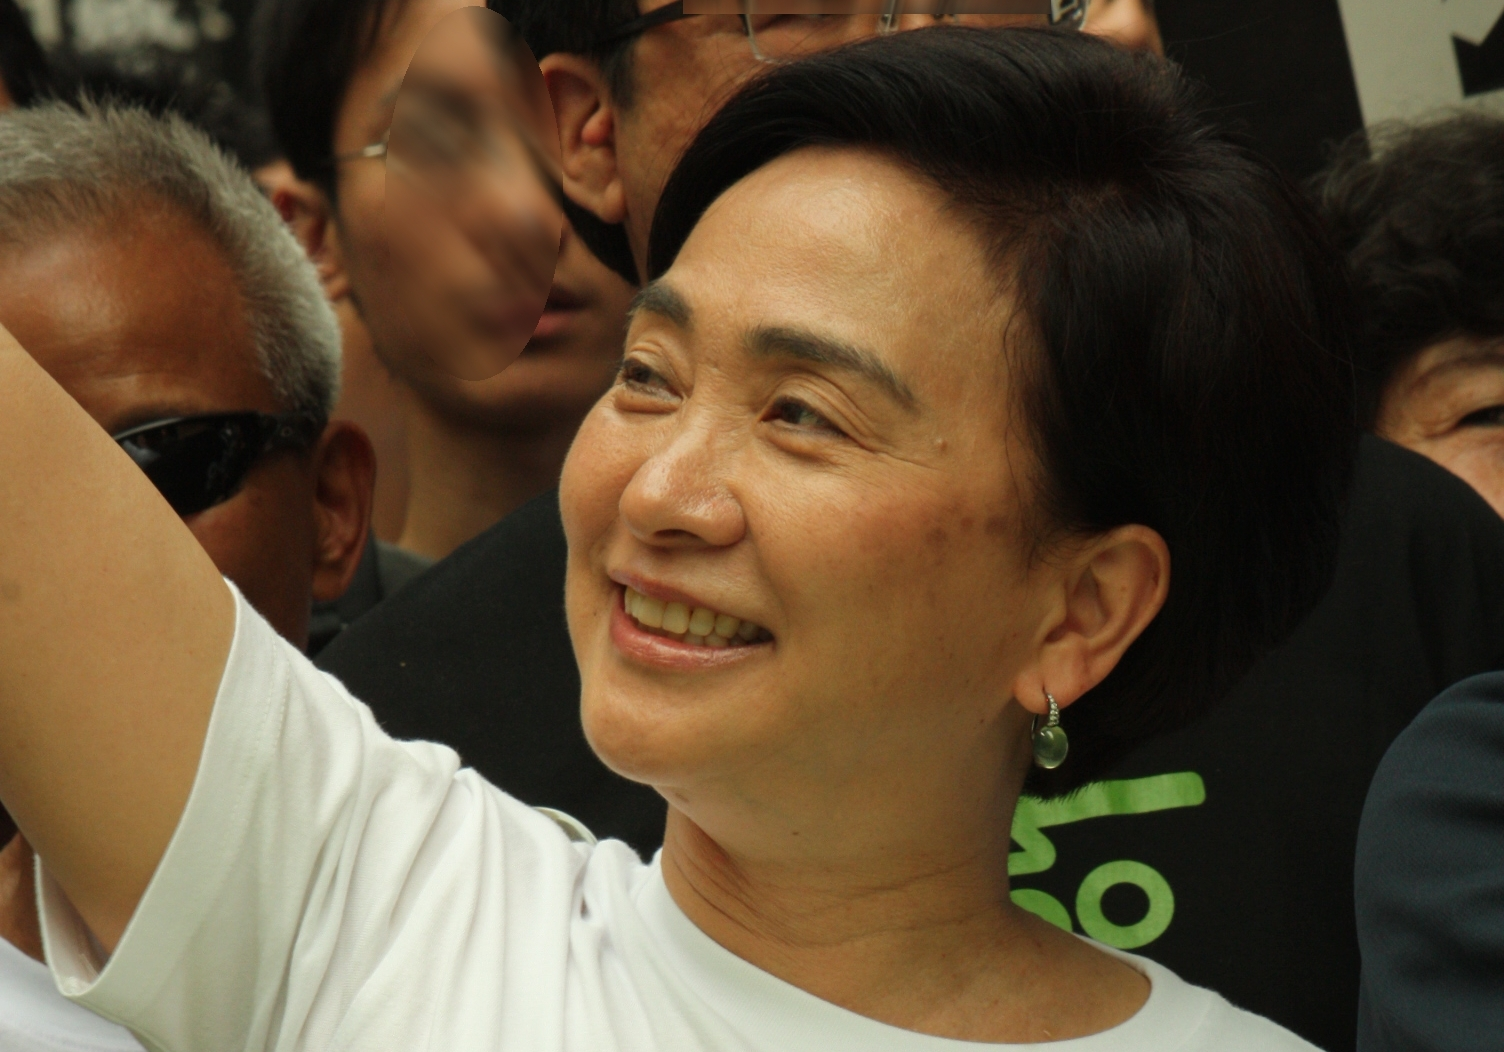 Emily Lau, a Hong Kong politician and member of the Legislative Council in the geographical seat of New Territories East.